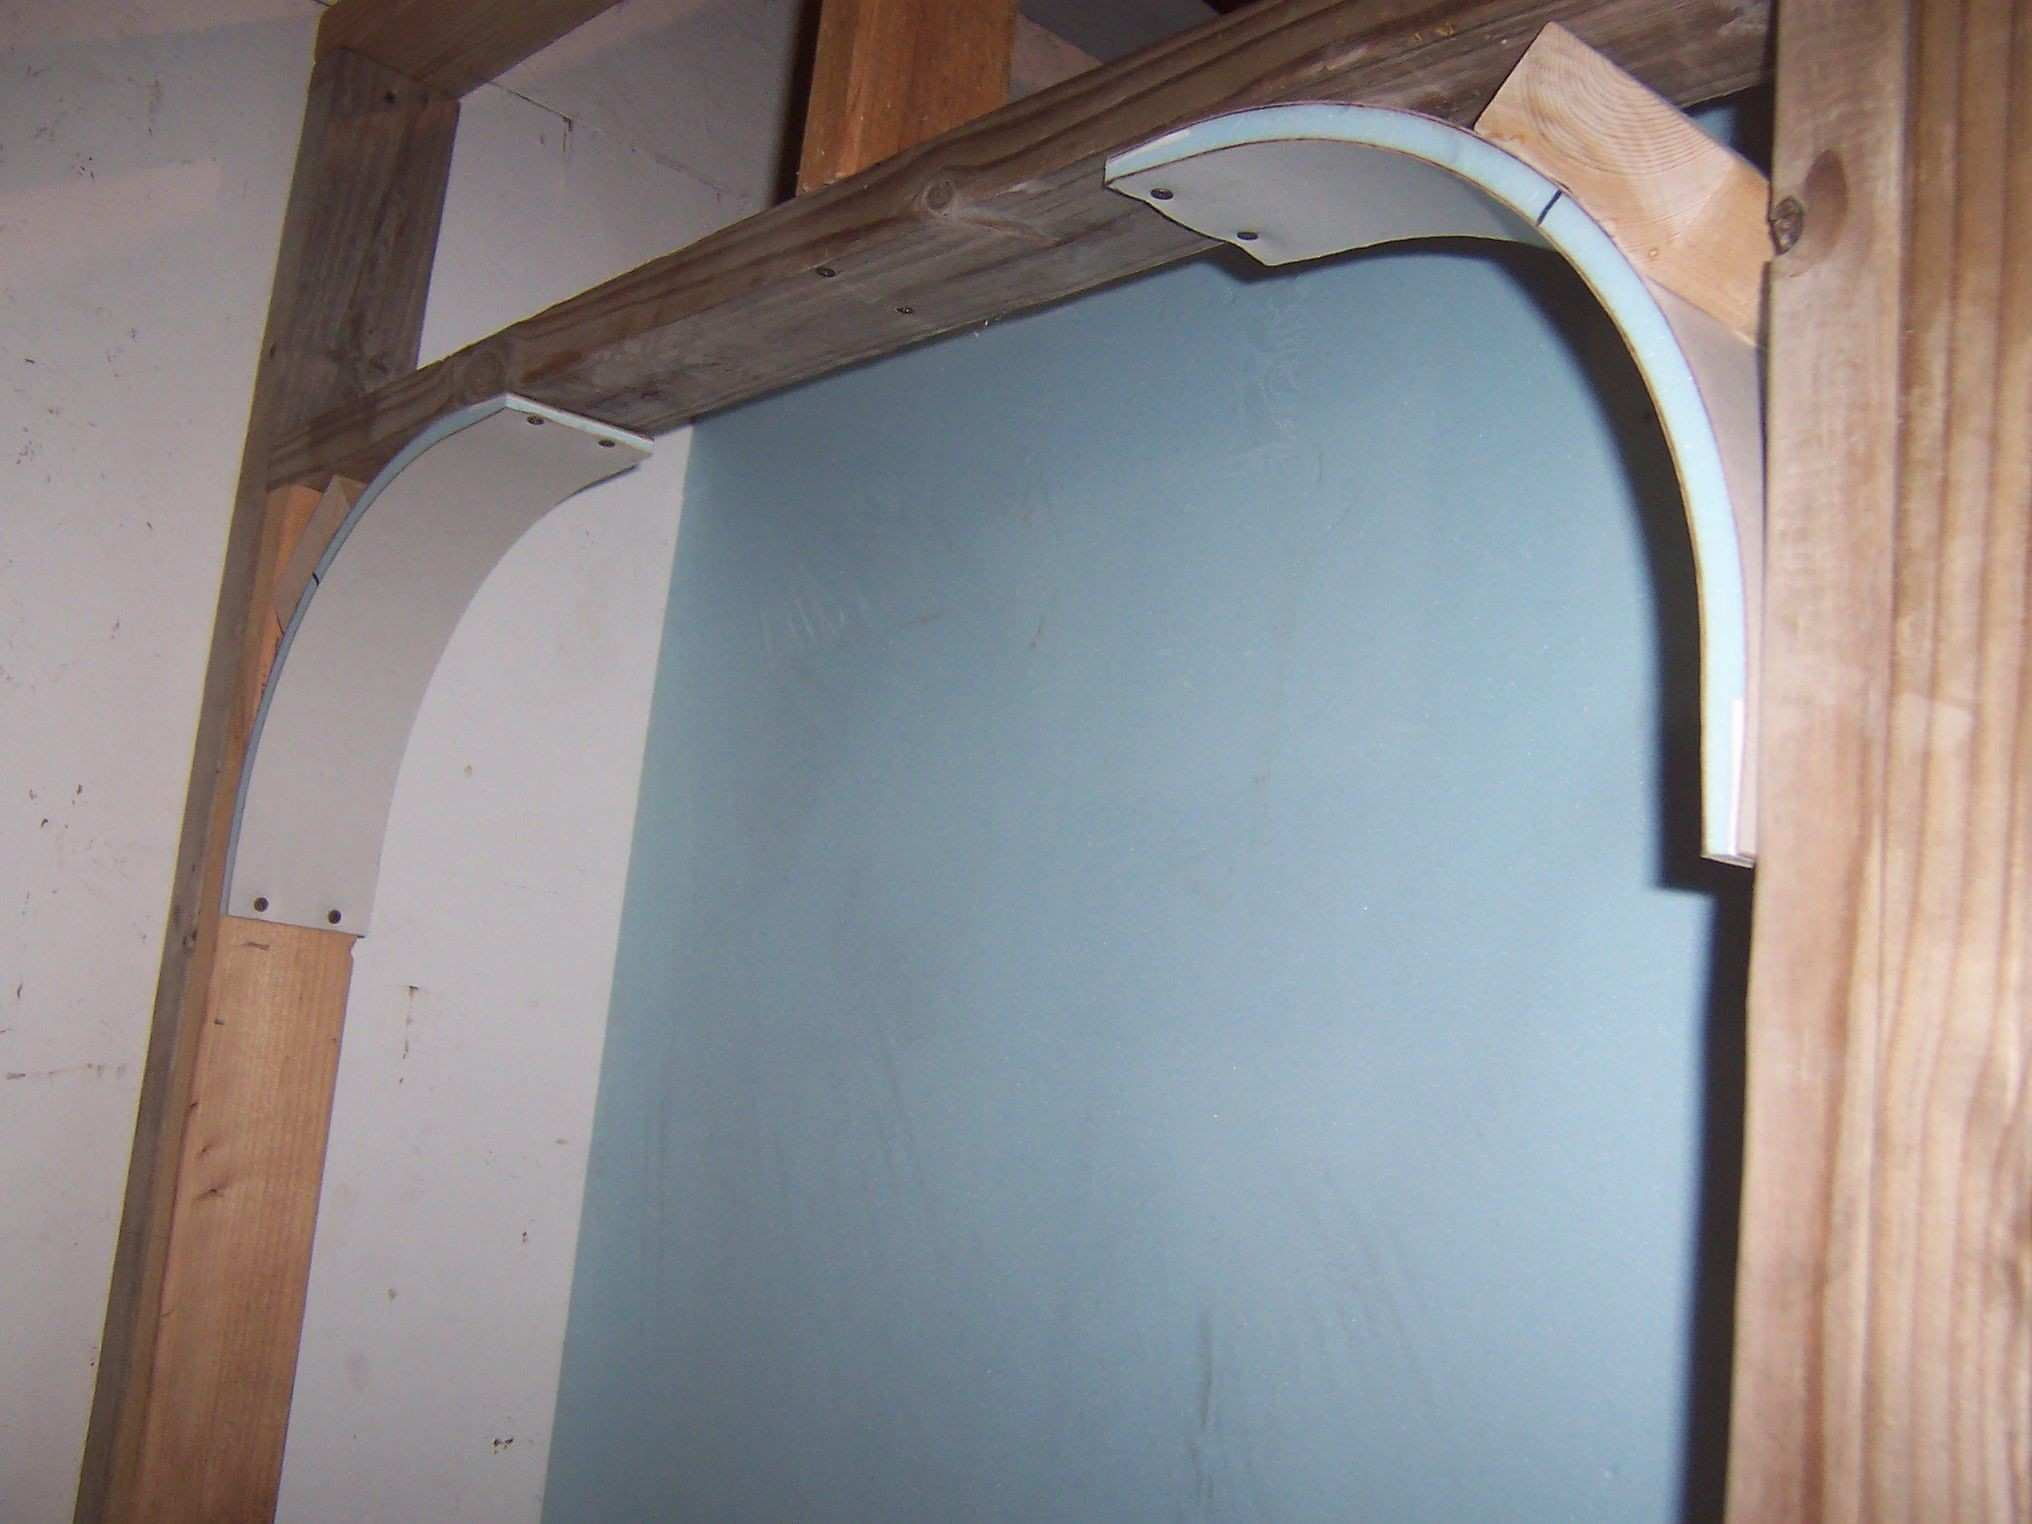 Hanging Pictures On Drywall New Pre Made Drywall Arches Simplest Possible Way to Create Arches No